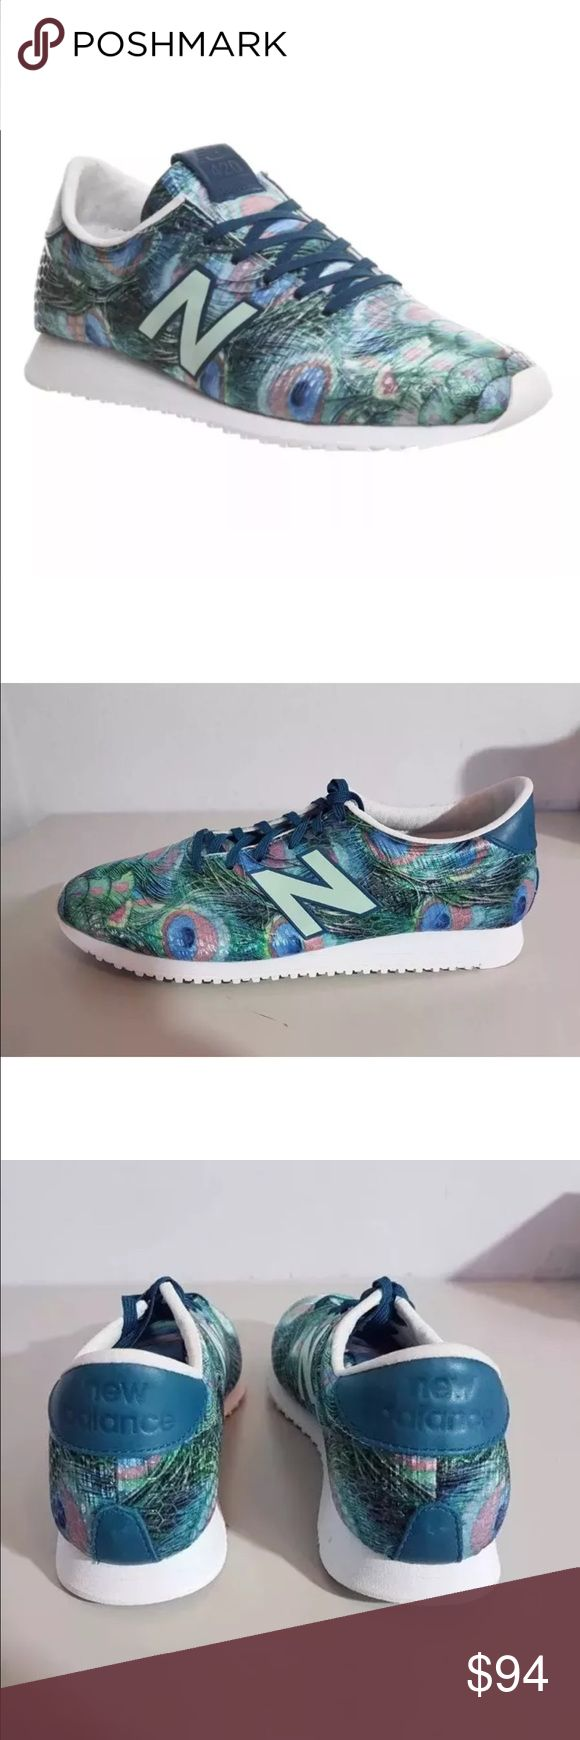 Nwob Rare new balance peacock trainers 6 Limited edition, price firm unless bundled New Balance Shoes Athletic Shoes